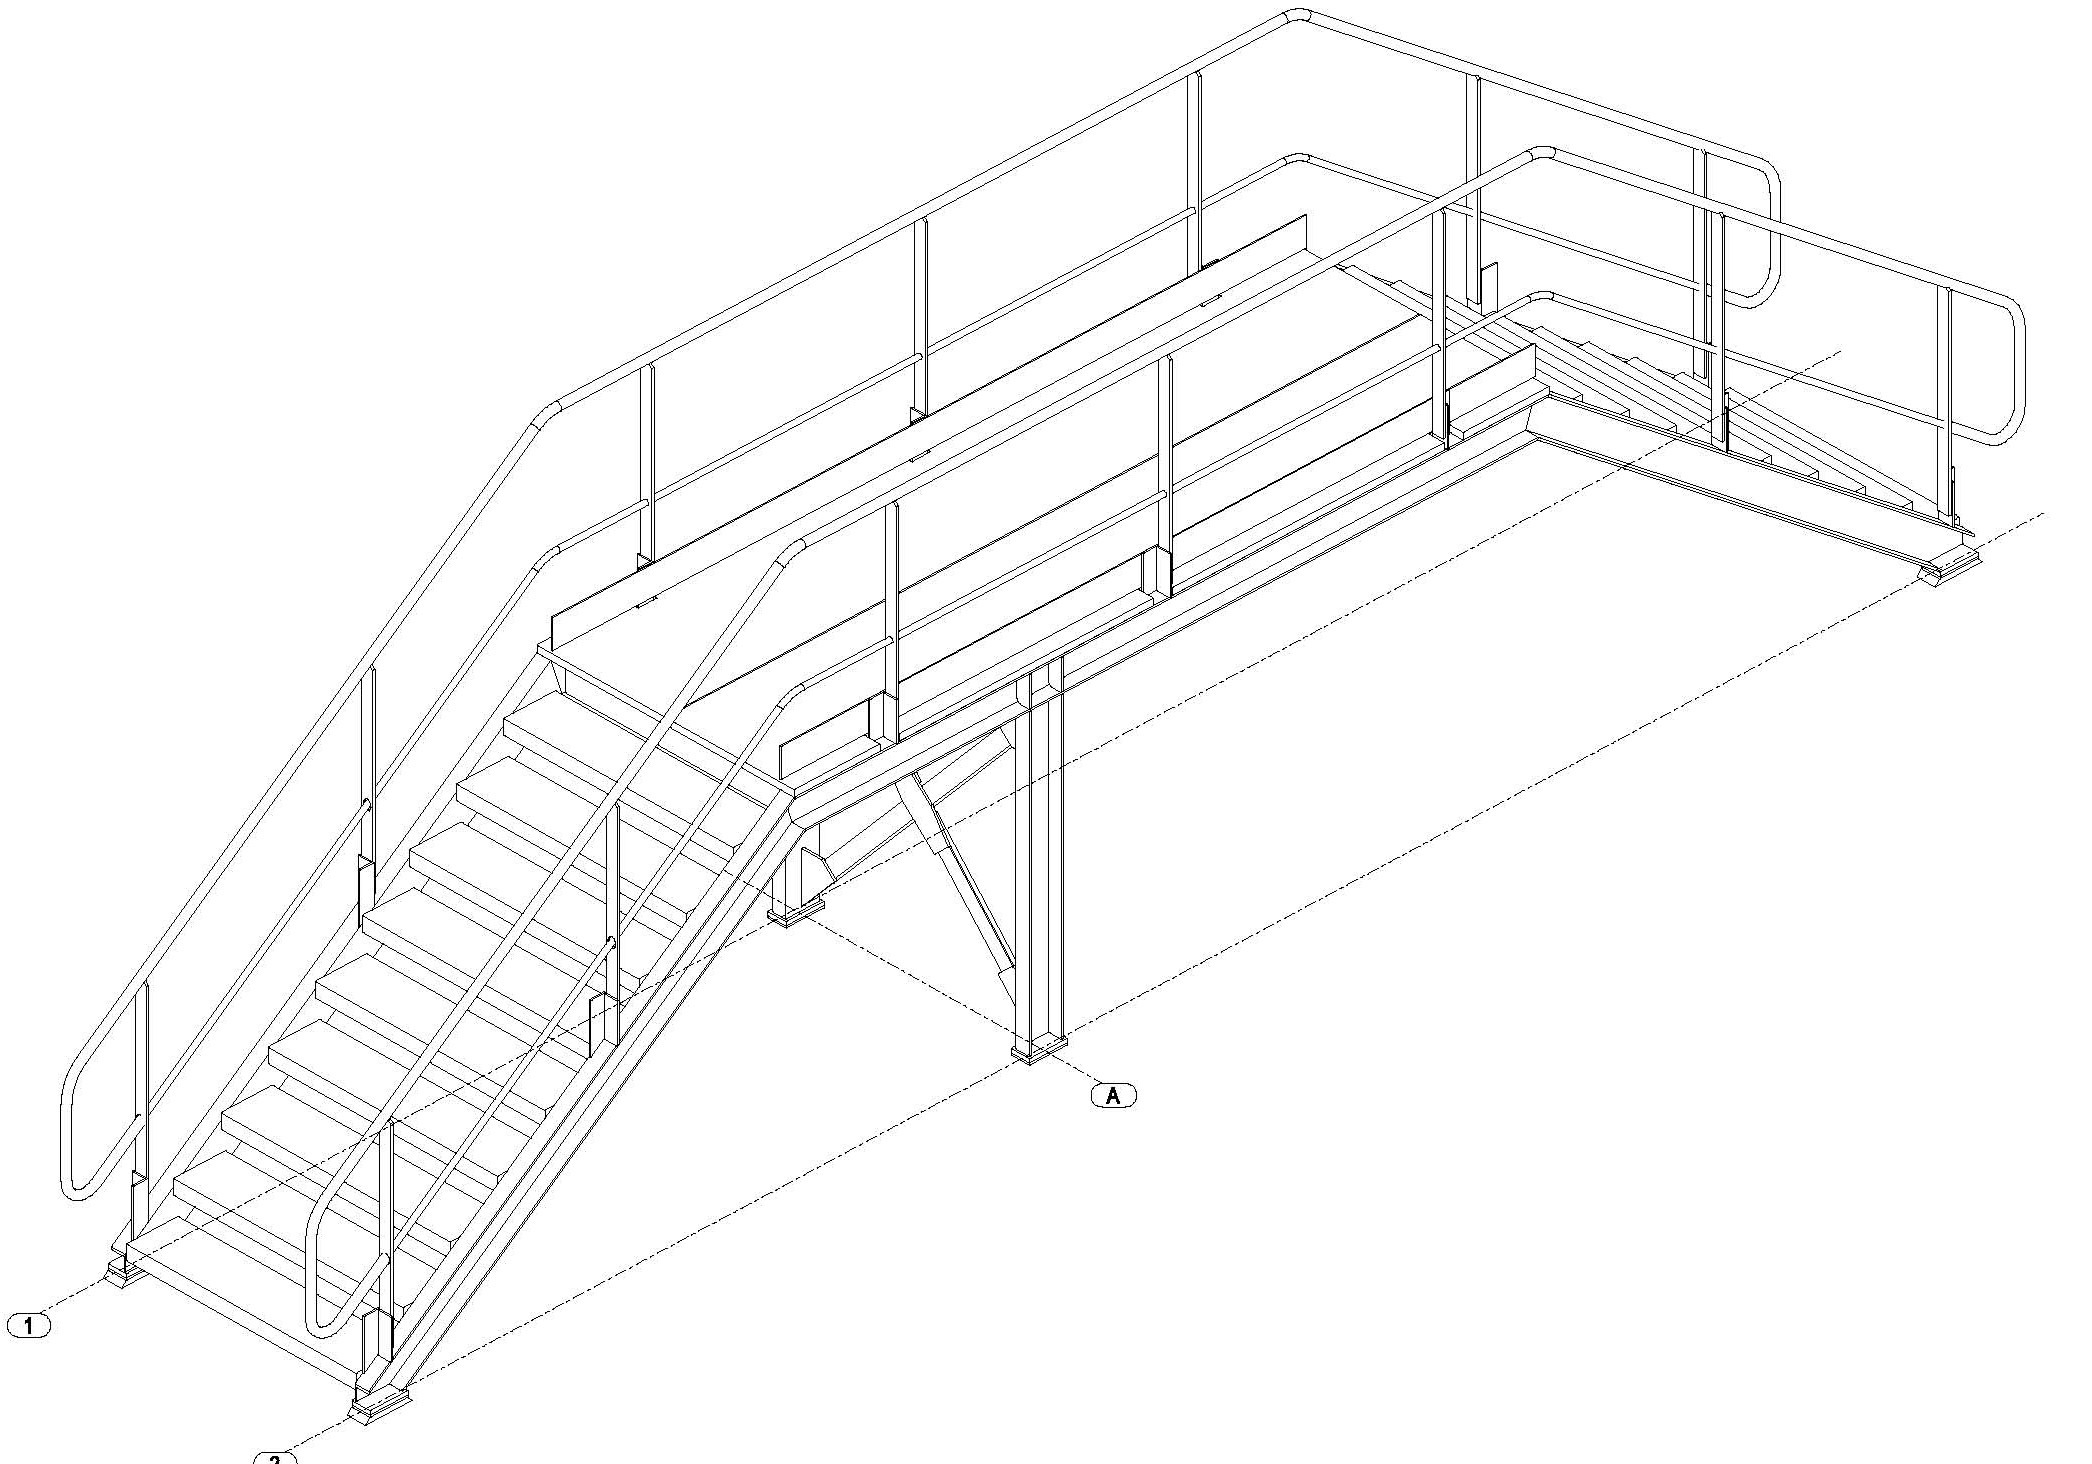 Structural Design Services Cad Structural Design India